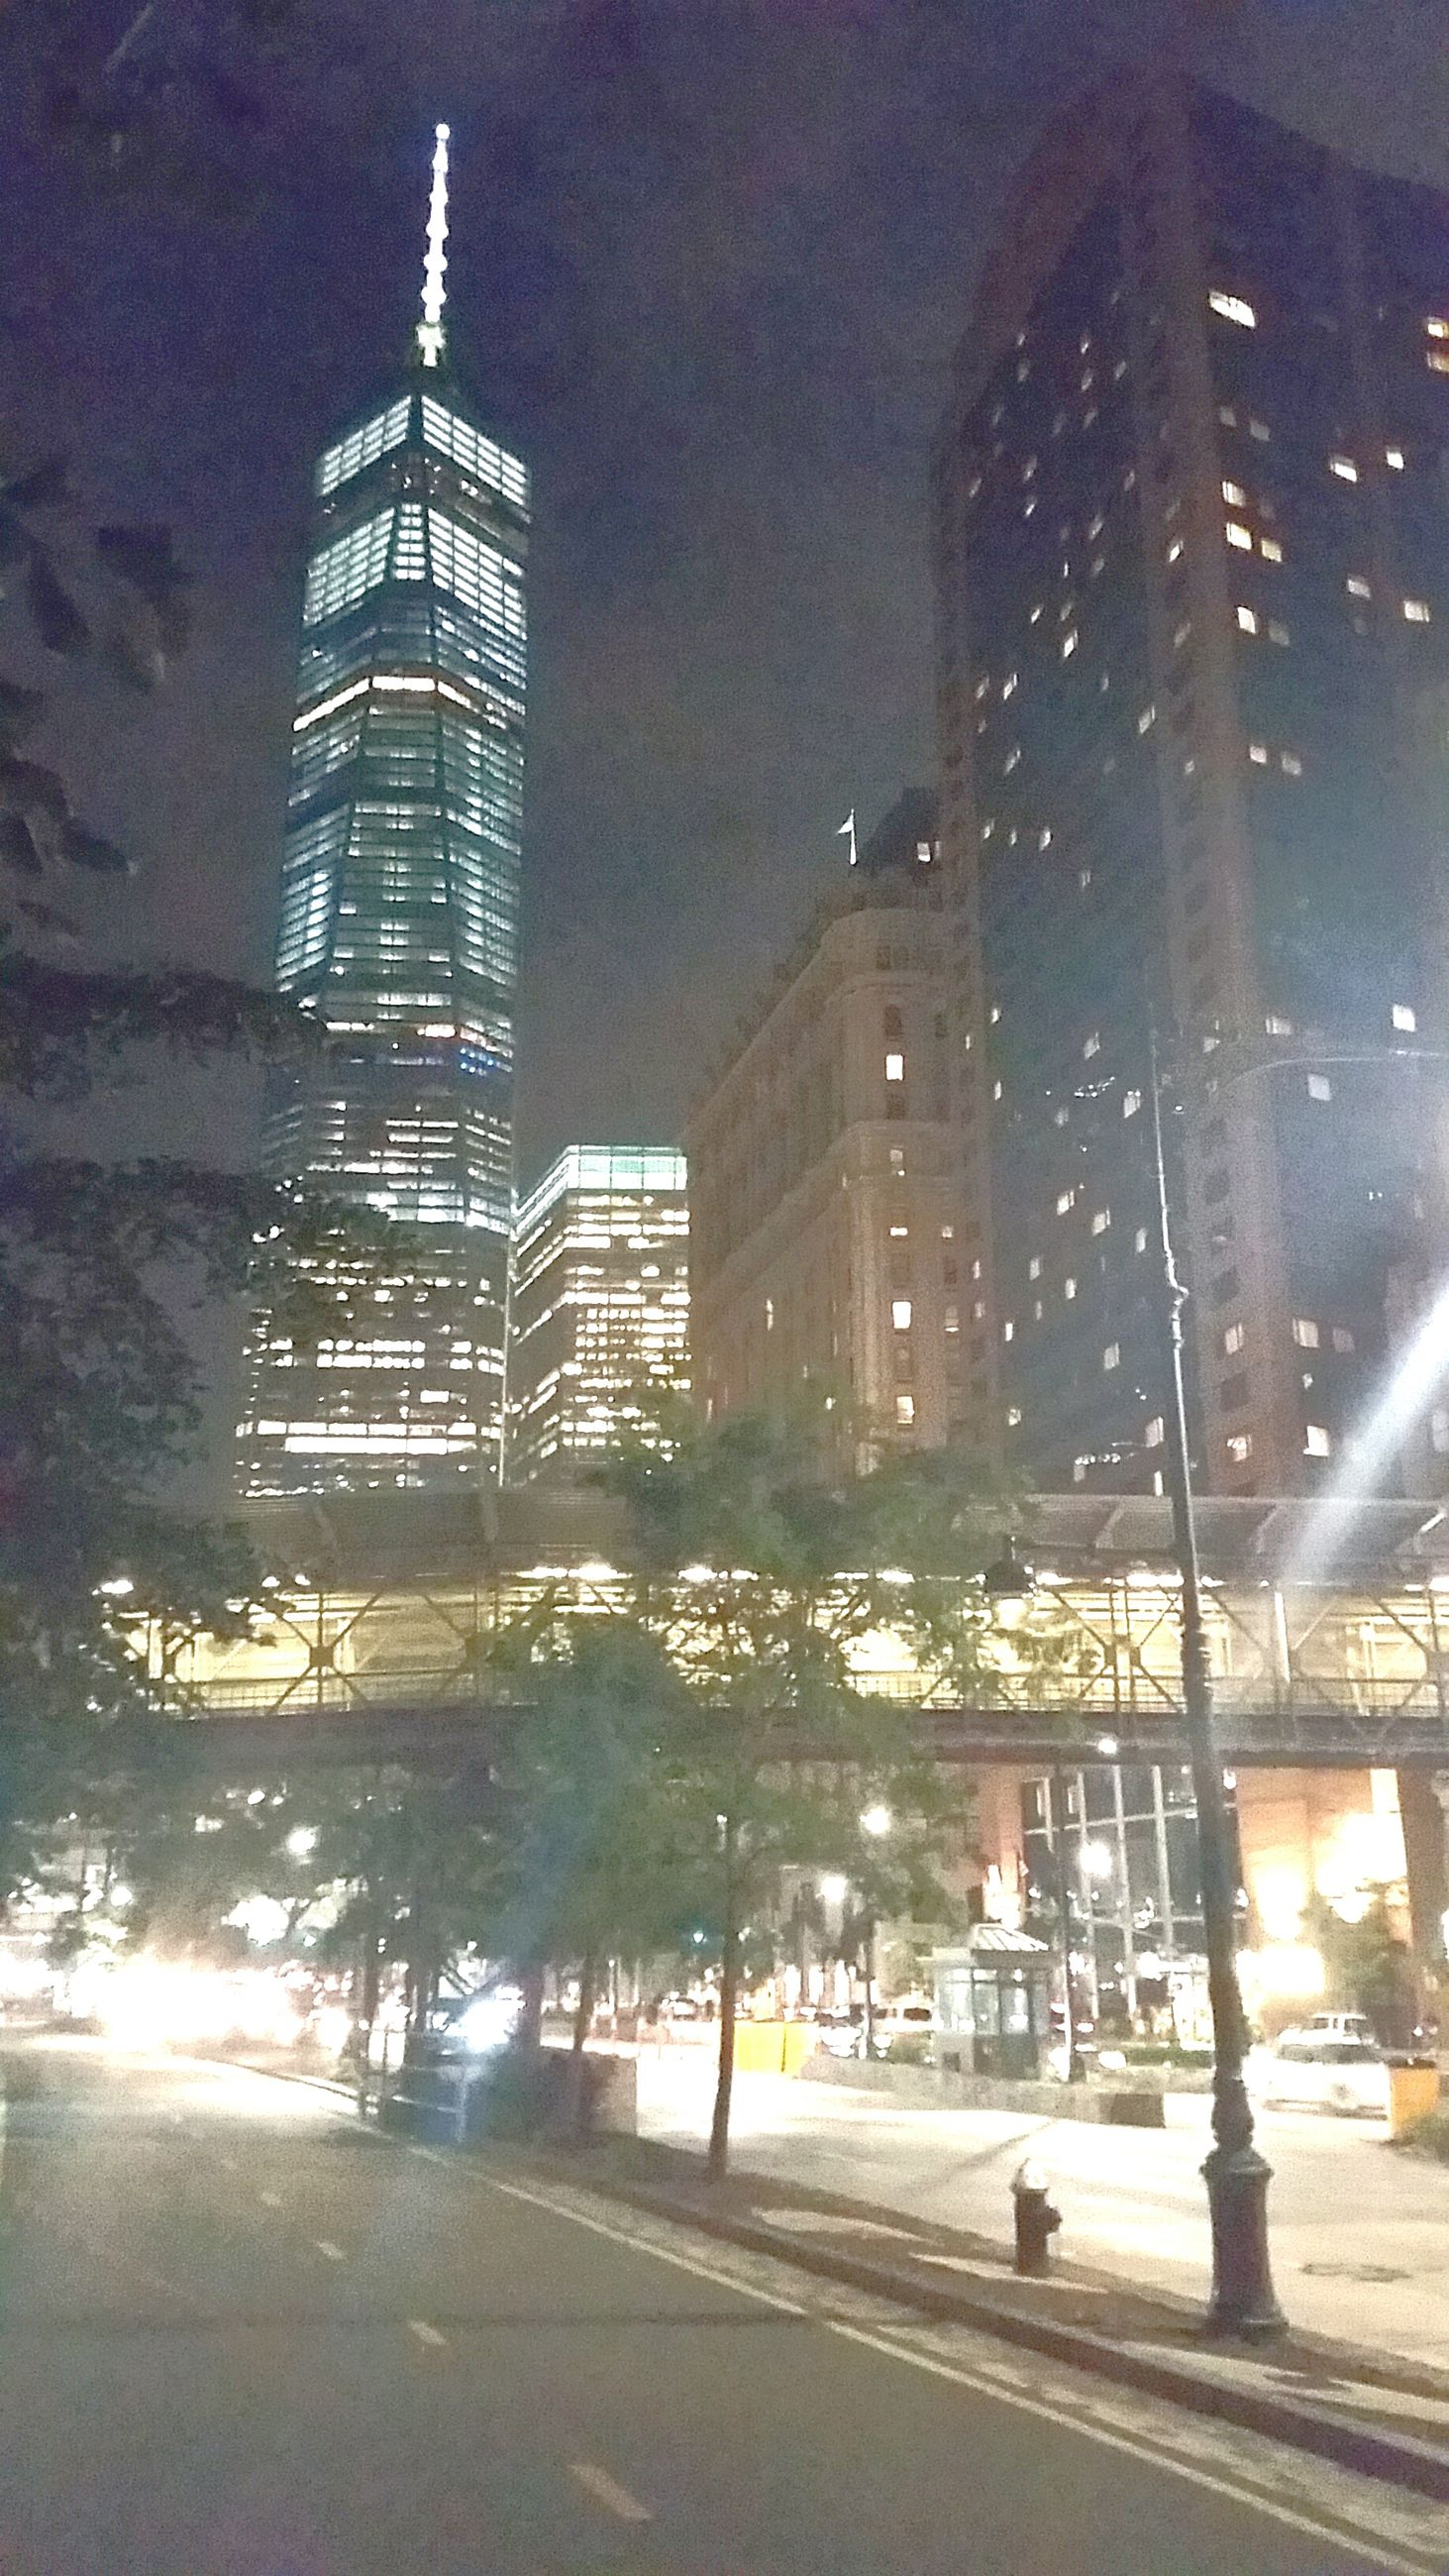 architecture, building exterior, built structure, skyscraper, tower, city, tall - high, illuminated, night, modern, office building, travel destinations, low angle view, city life, urban skyline, sky, spire, cityscape, financial district, tourism, growth, building story, outdoors, capital cities, famous place, development, tall